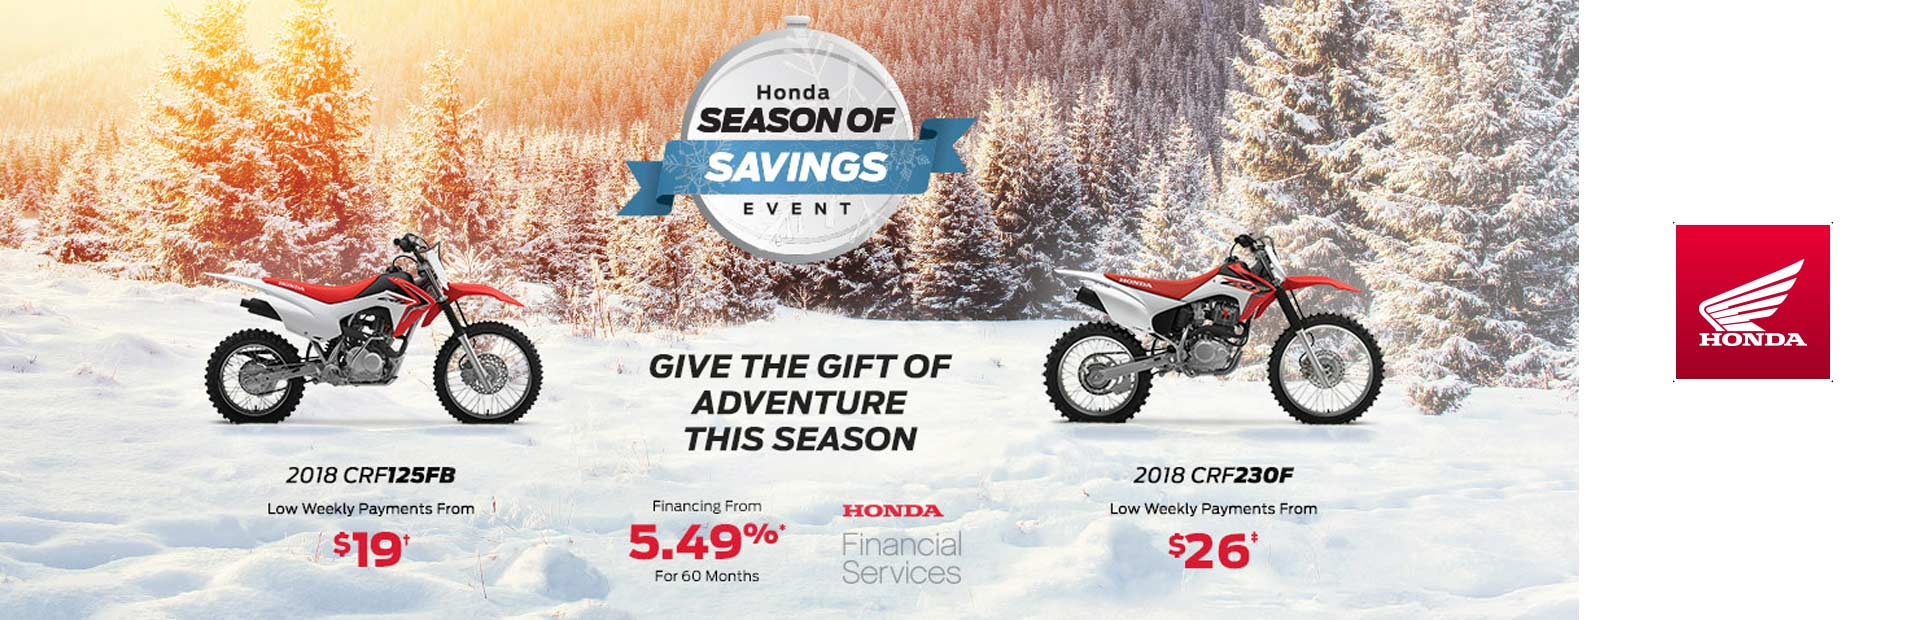 Honda: Season of Savings Event